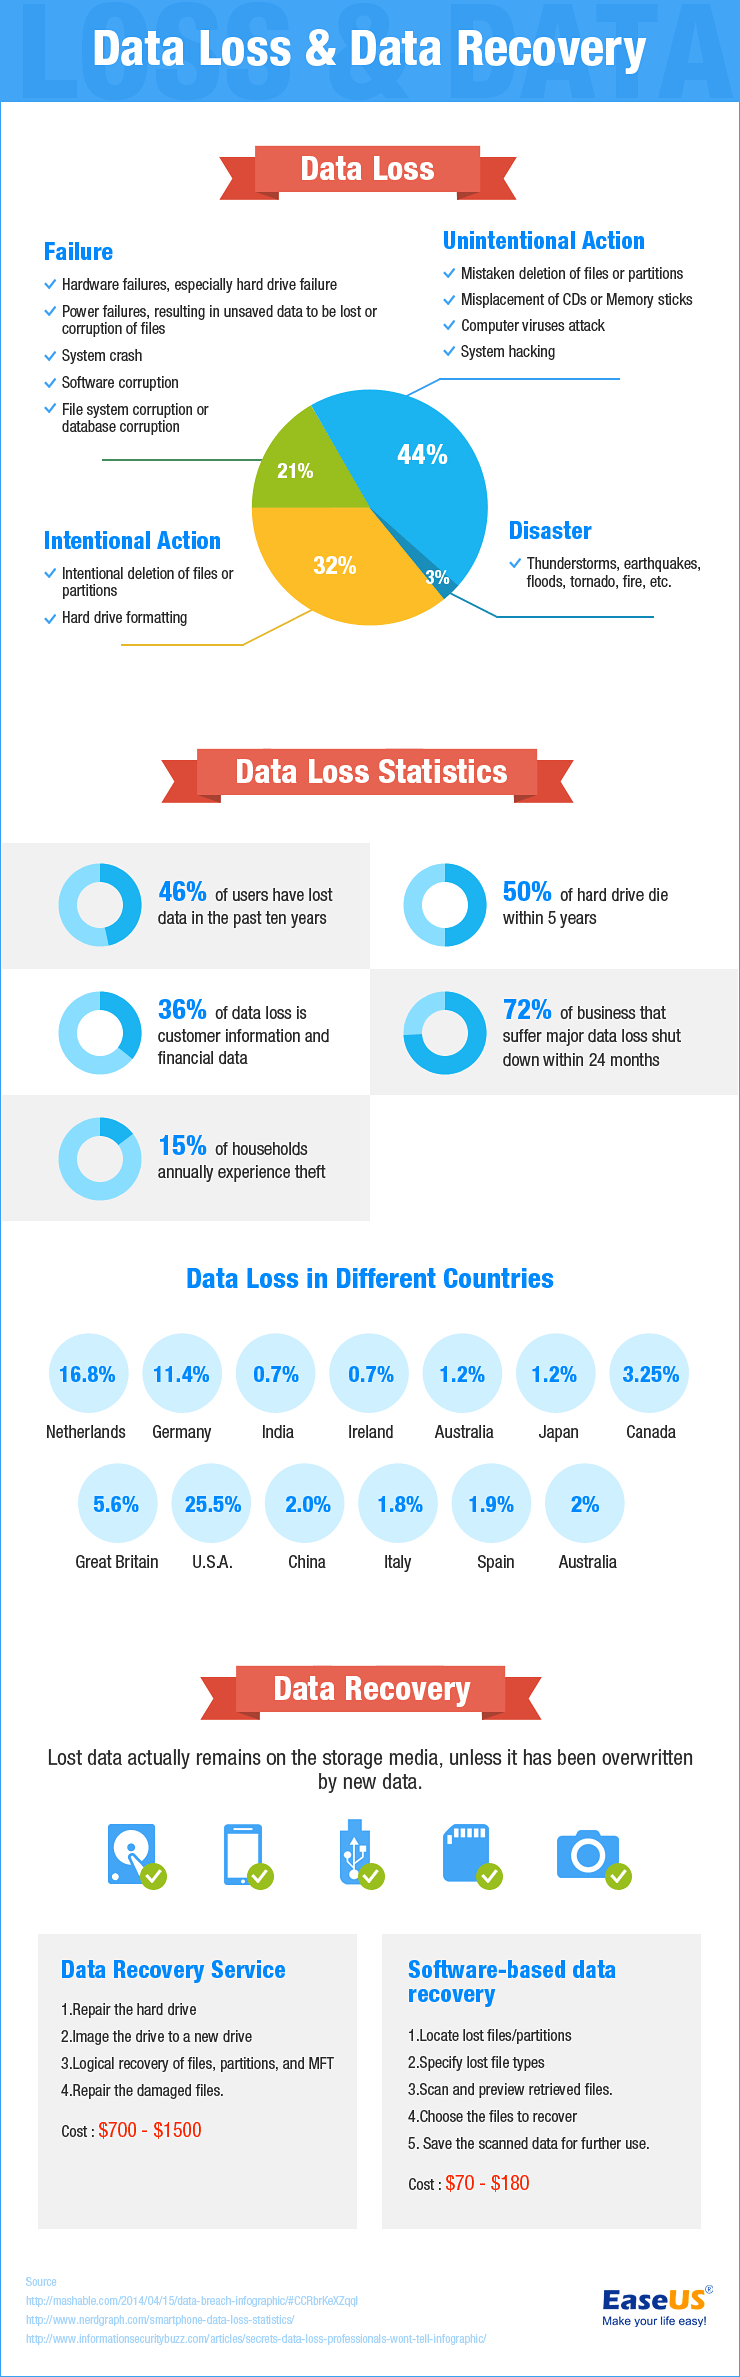 data-loss-and-data-recovery-infographic-design